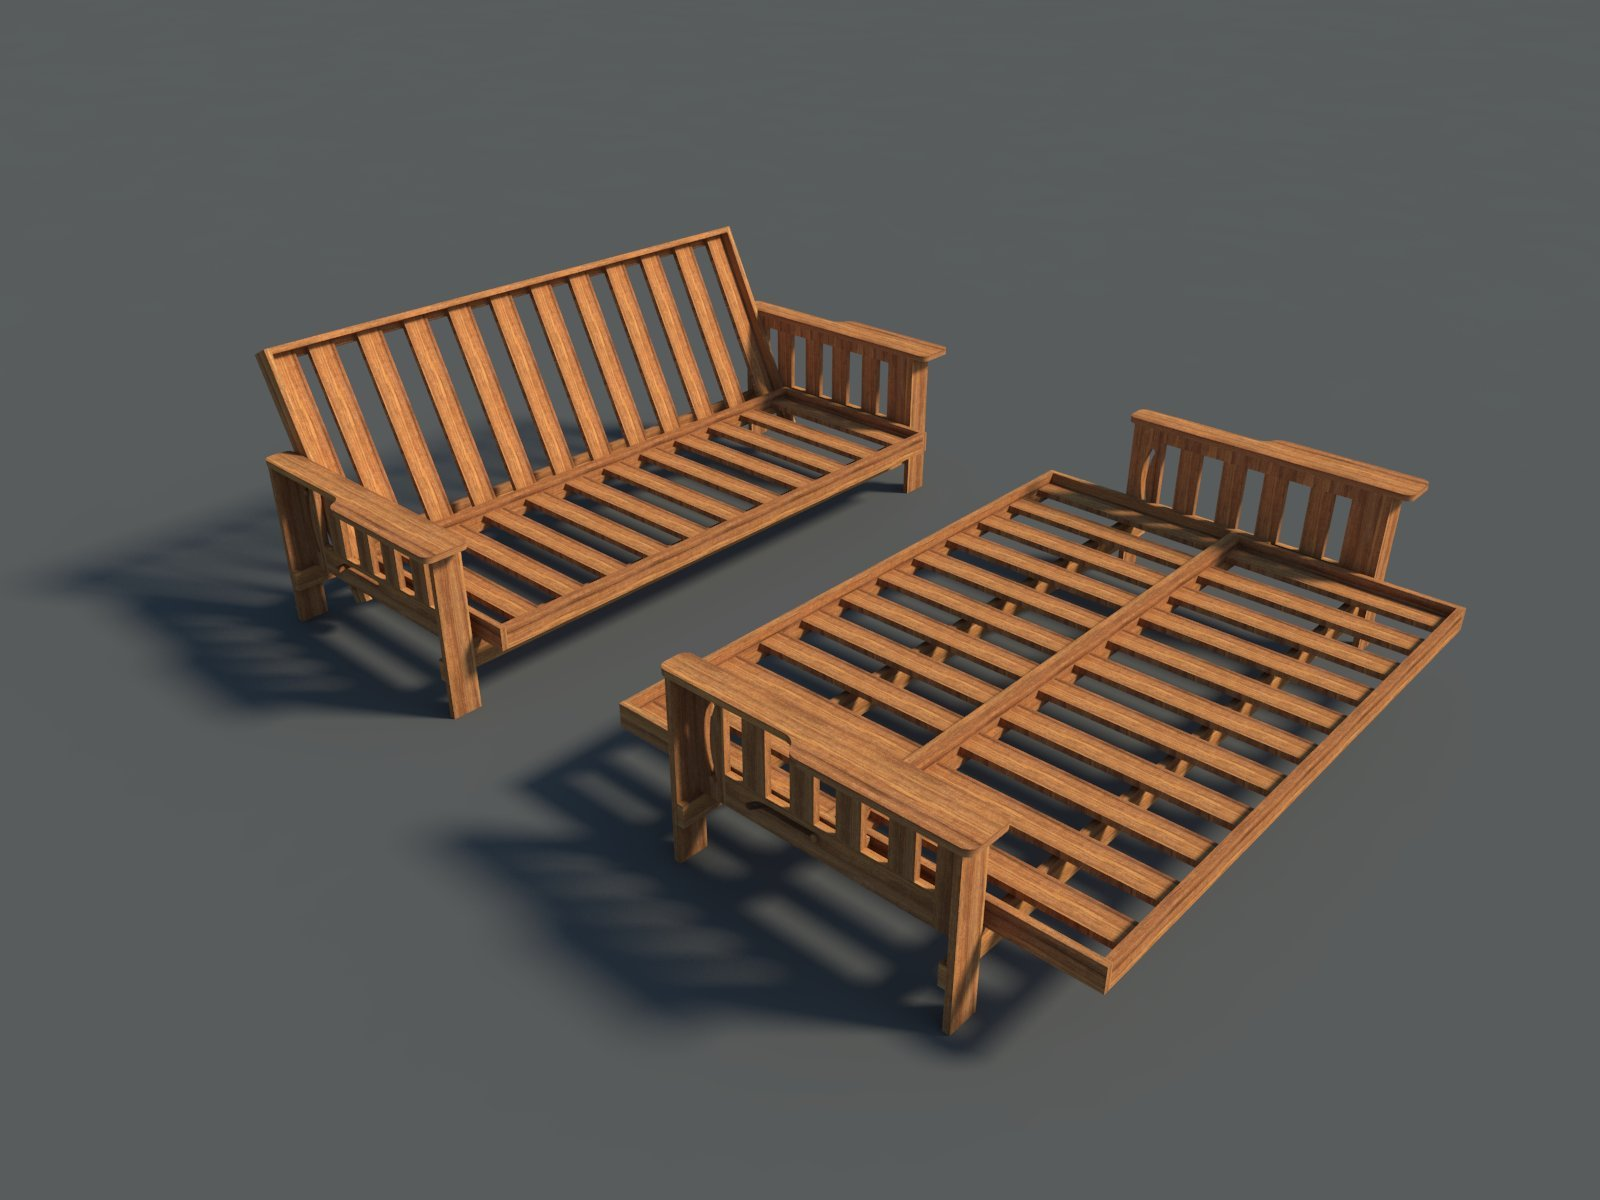 Futon Sofa Bed Plans DIY Lounger Couch Sleeper Furniture Building Woodworking